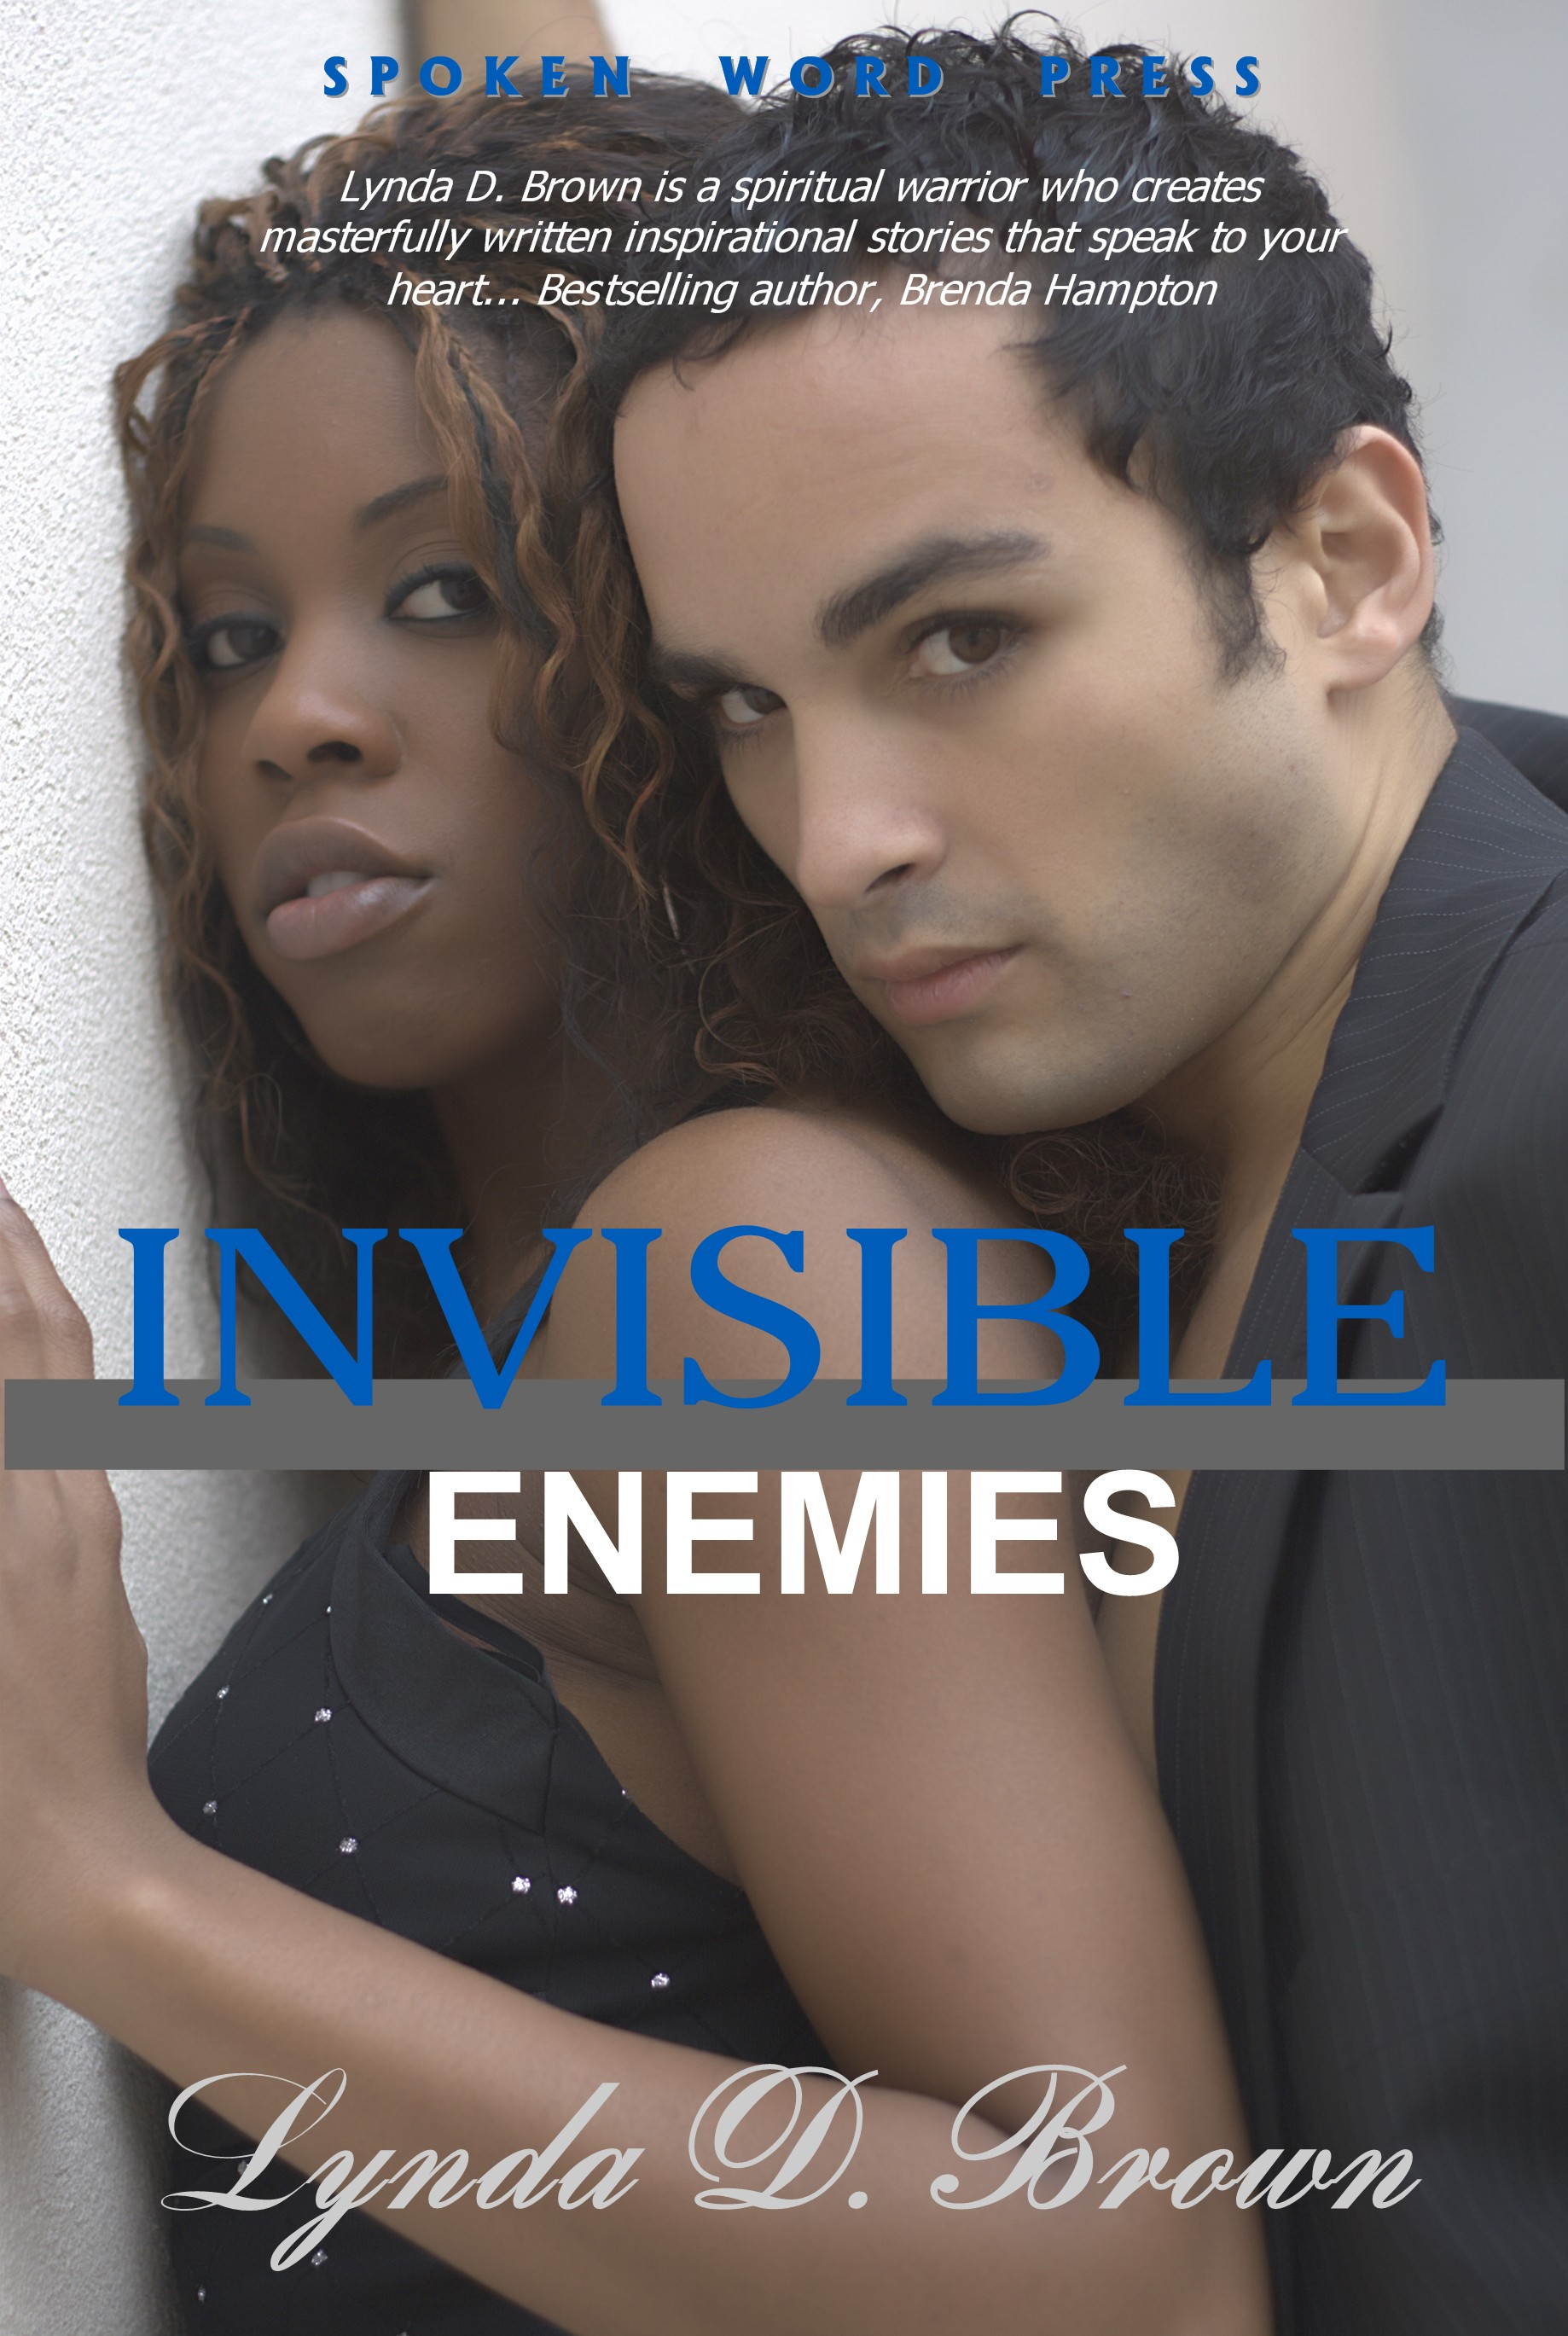 Invisible Enemies Book One of the Invisibile Enemies Series